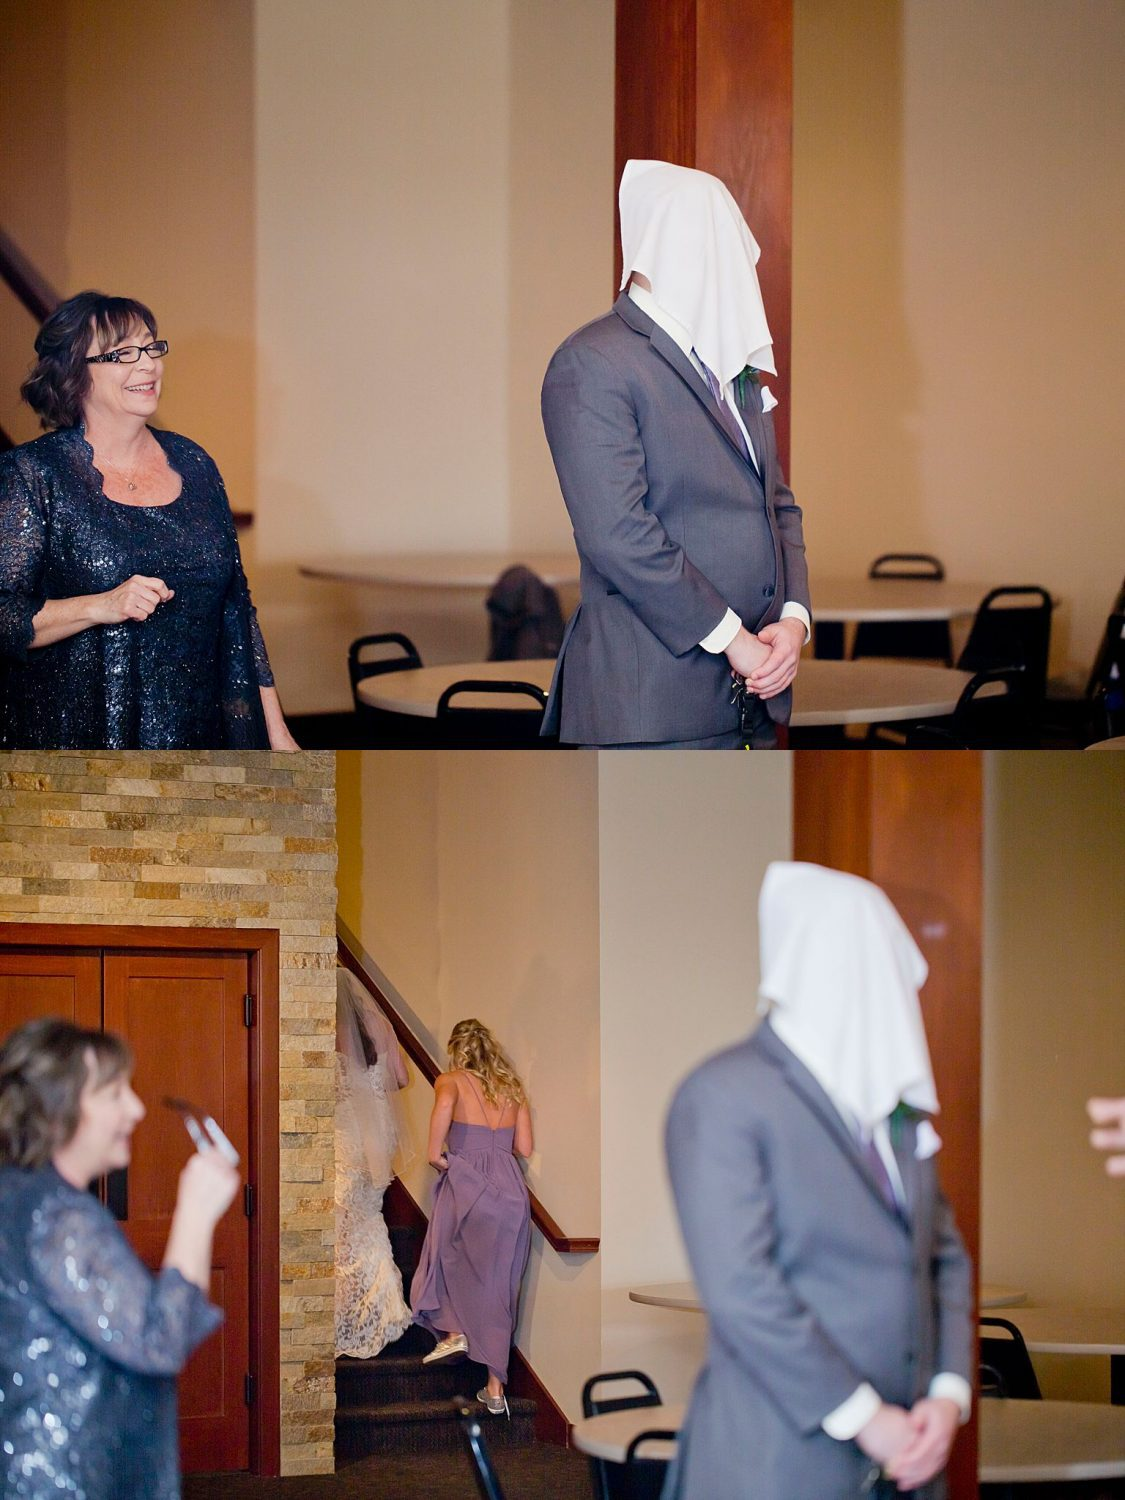 The groom stands with a towel over his head as his bride sneaks past to hide upstairs before the ceremony.